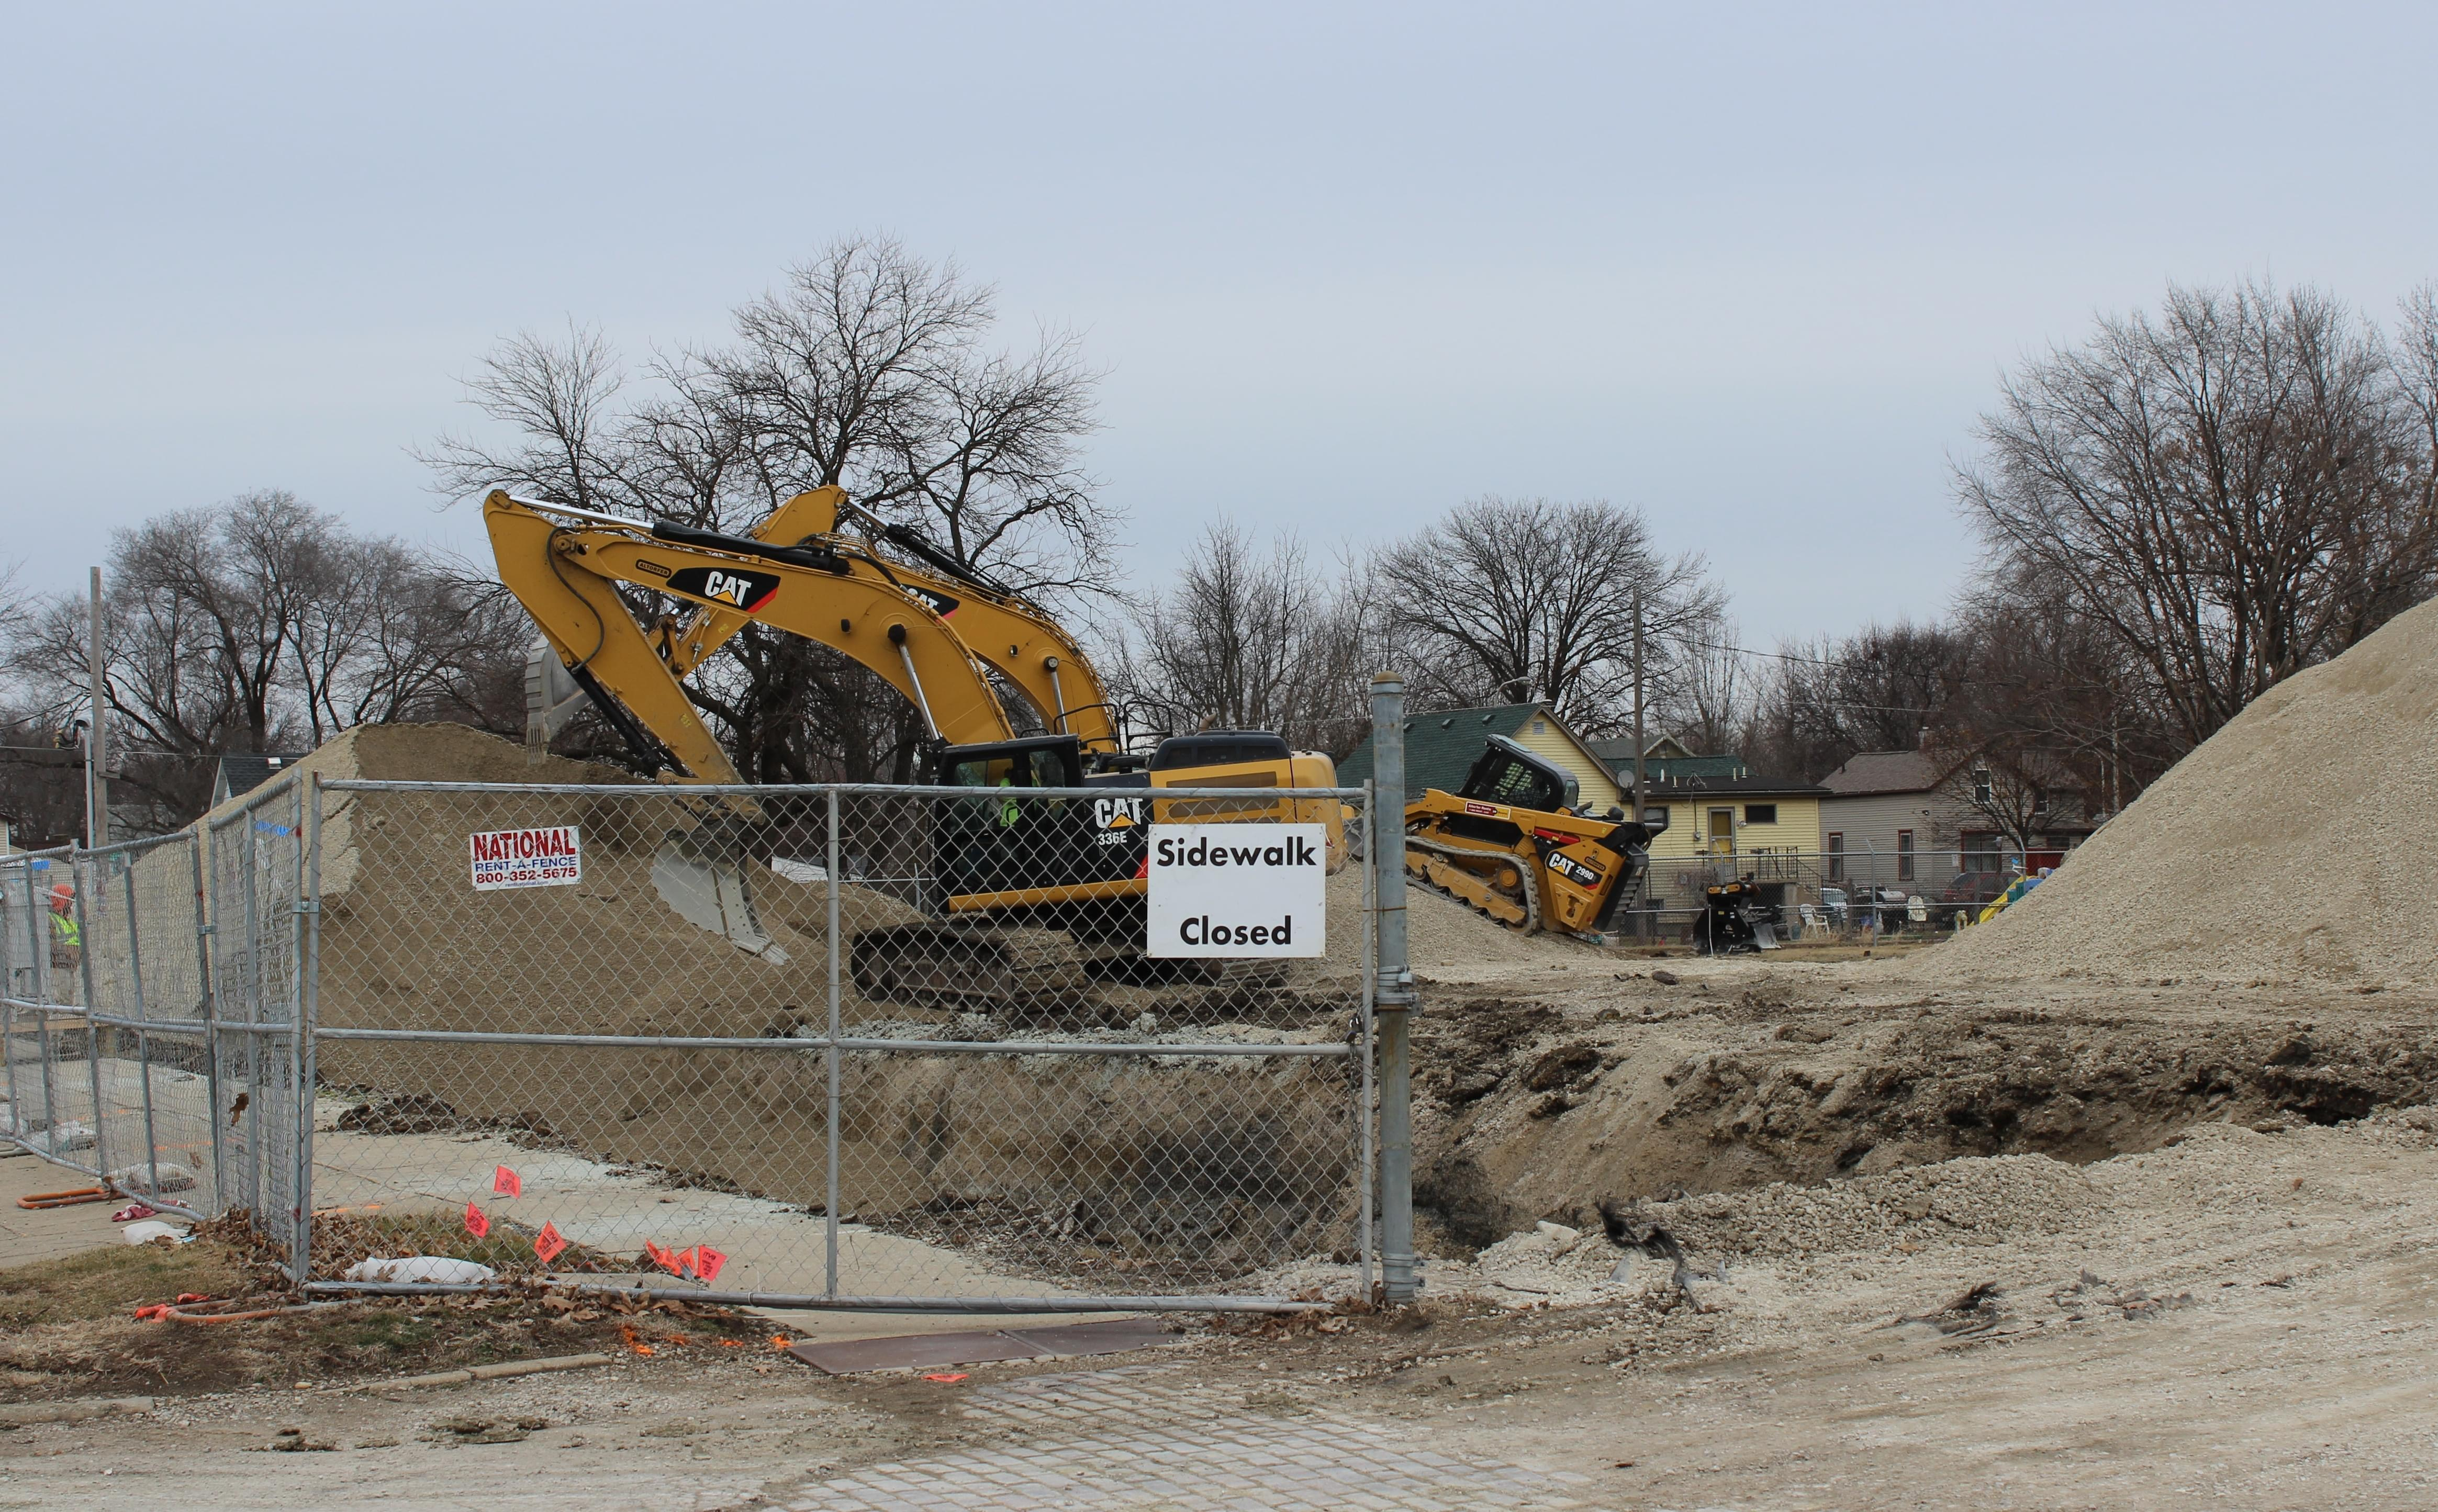 Construction equipment at the 5th and Hill manufactured gas plant site in Champaign.